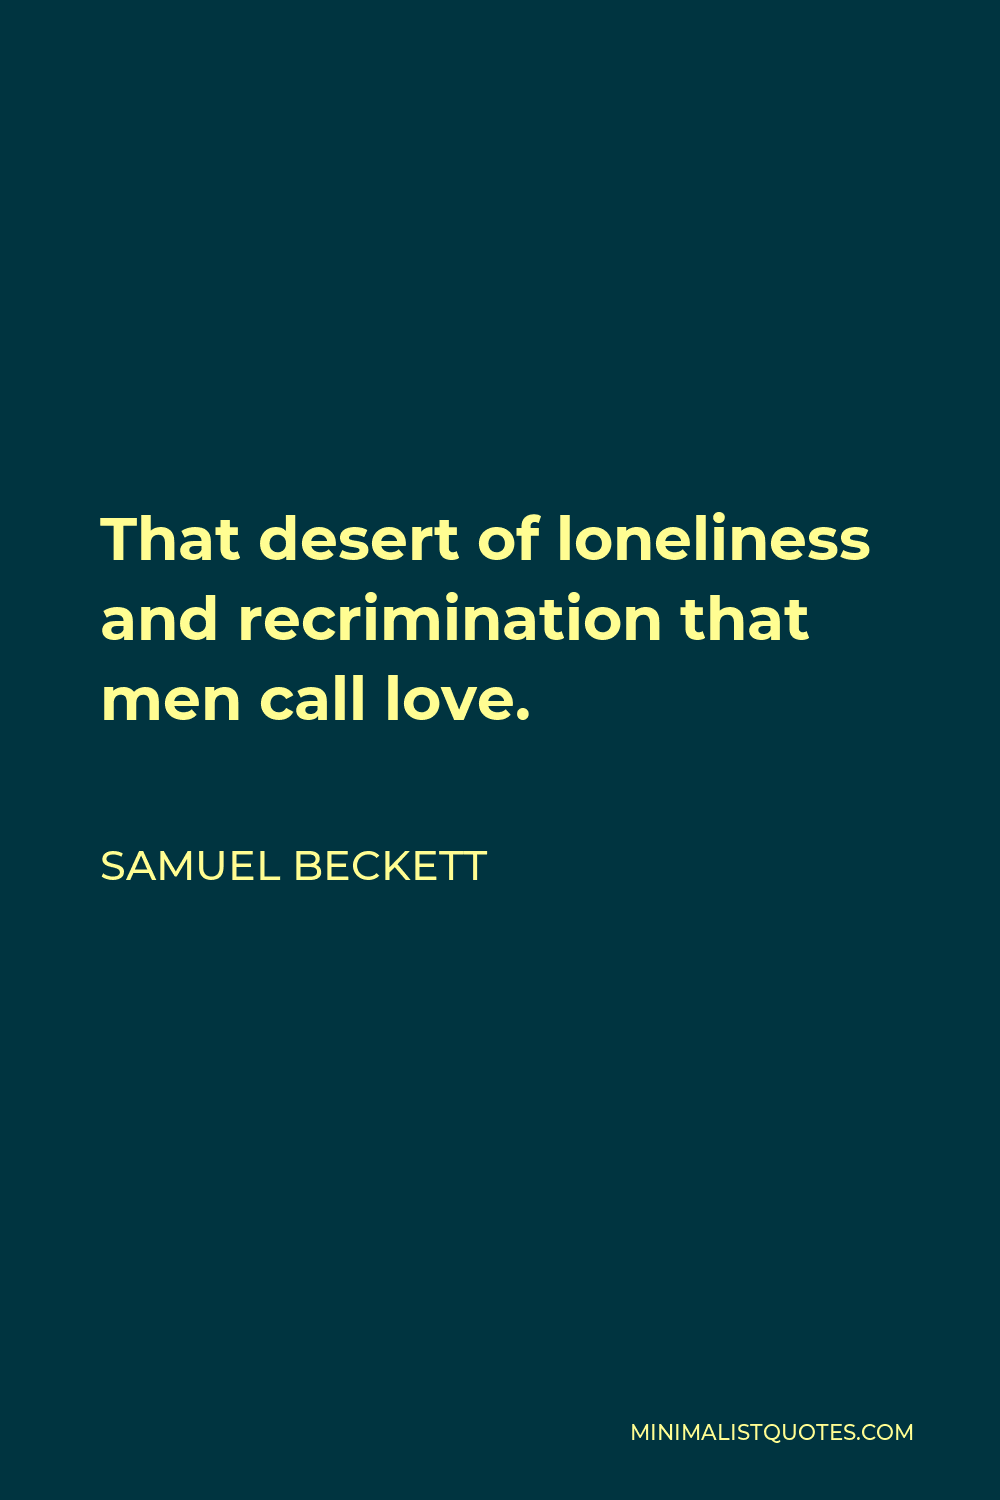 Samuel Beckett Quote - That desert of loneliness and recrimination that men call love.